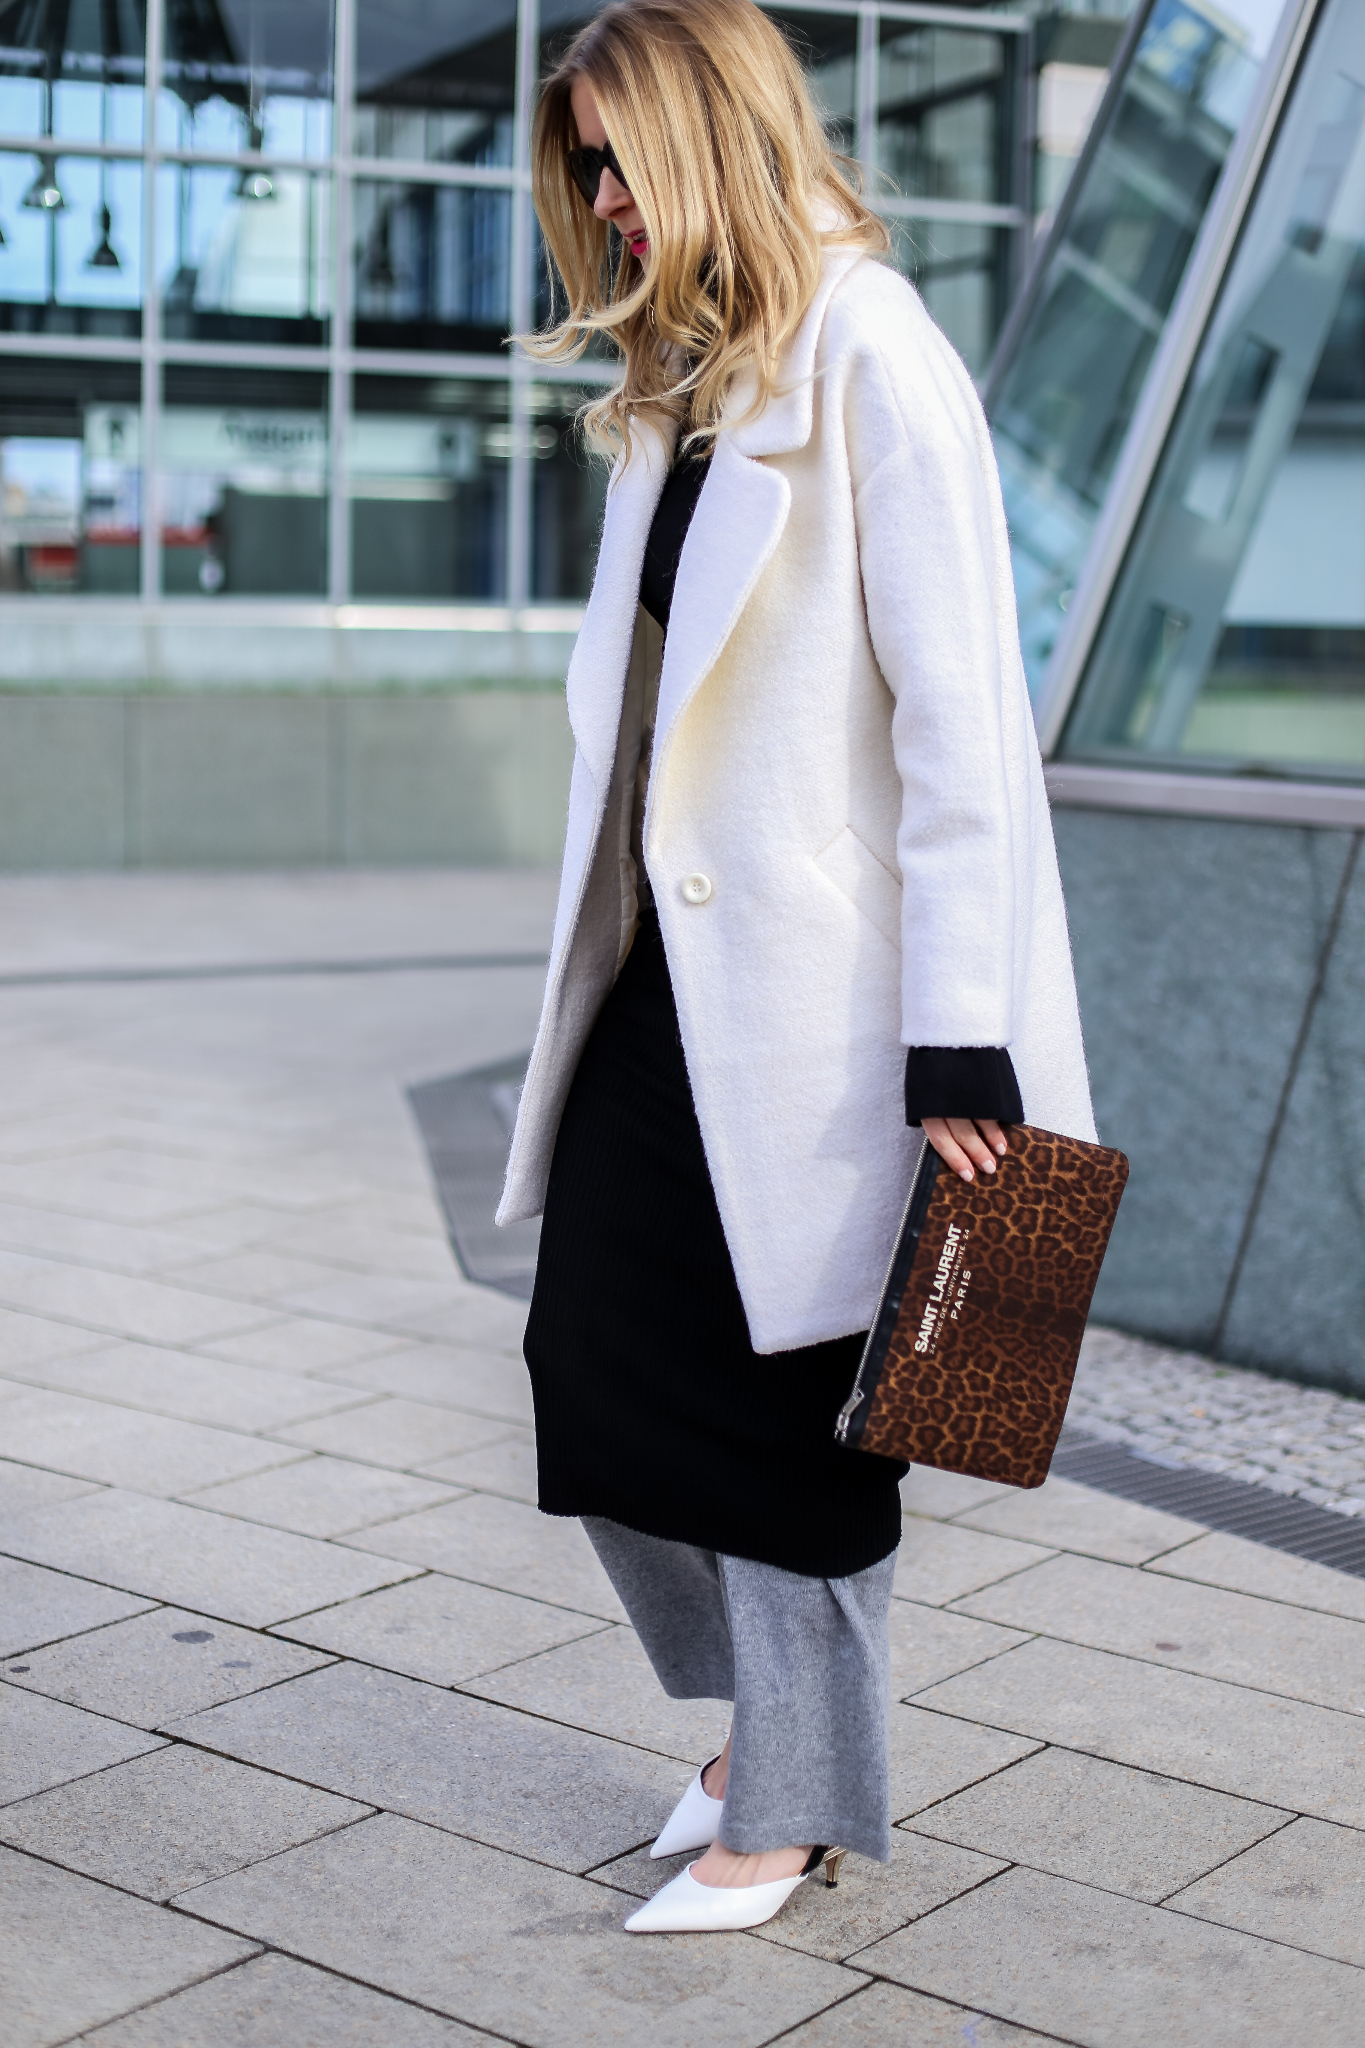 MOD-by-Monique-Fashion-Looks-Neutral-Layers-14